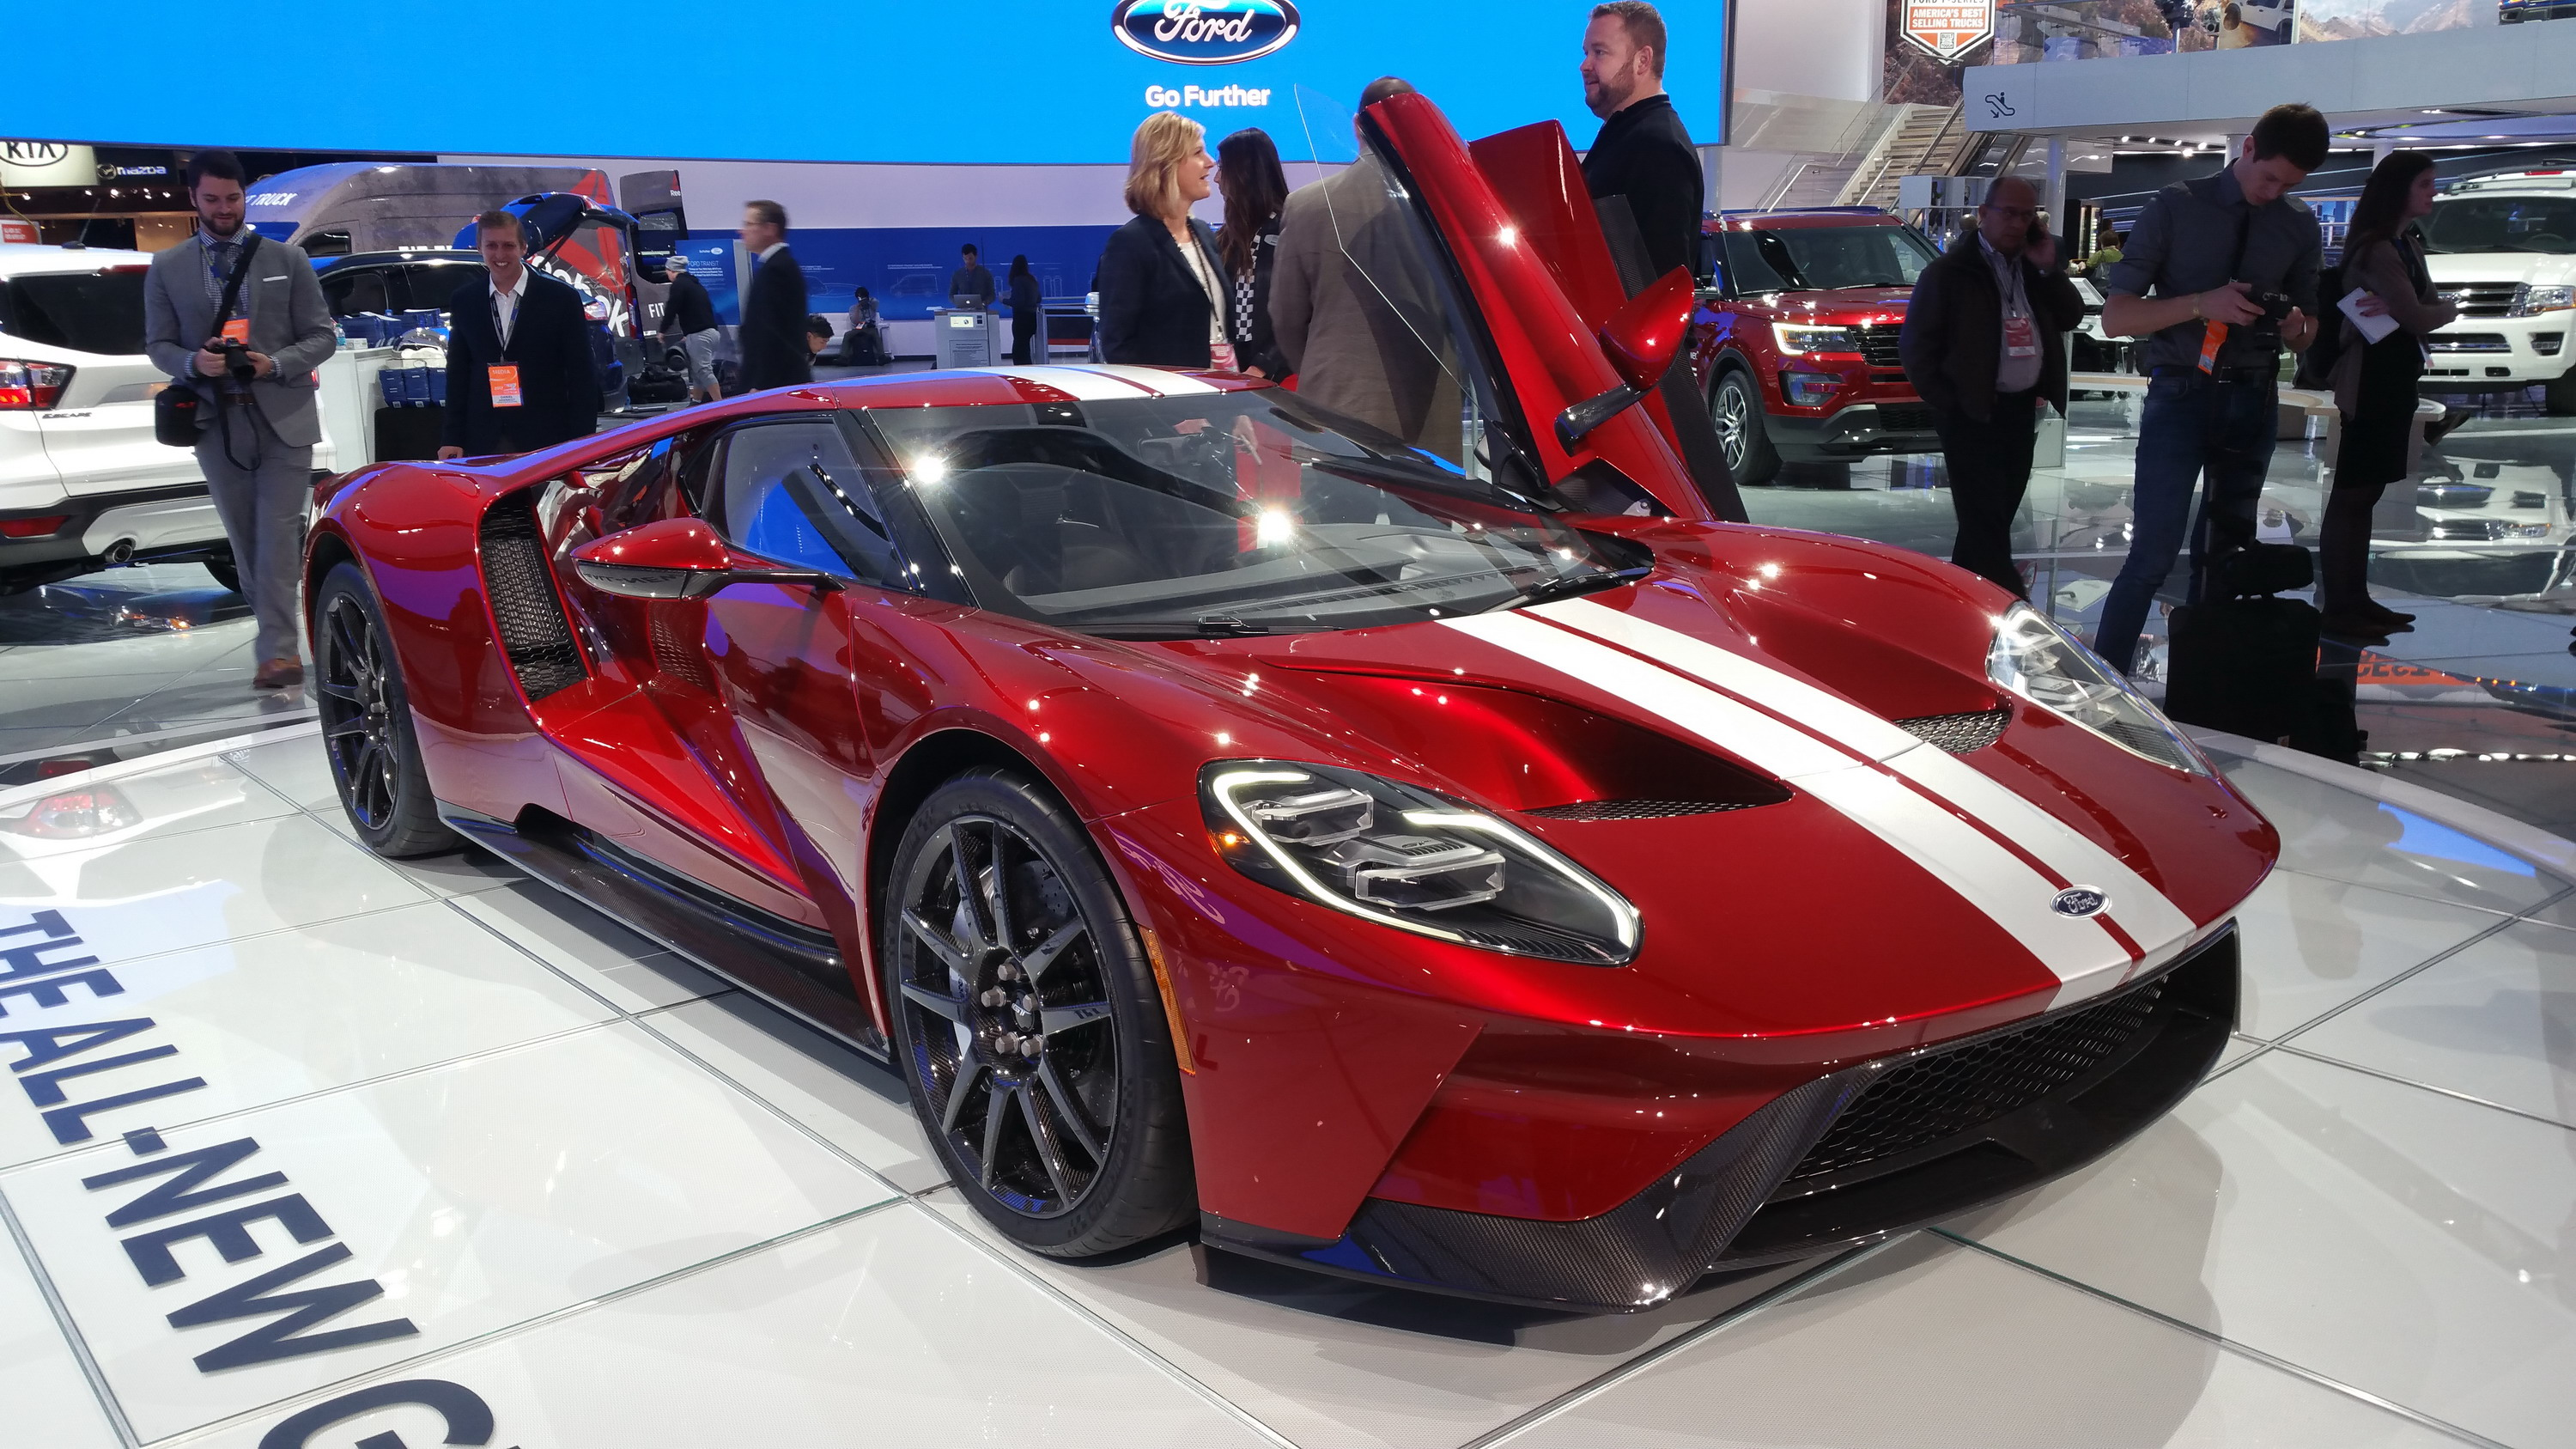 Spoiler Alert The New Ford Gt Supercar Is Not Fuel Efficient Top Speed